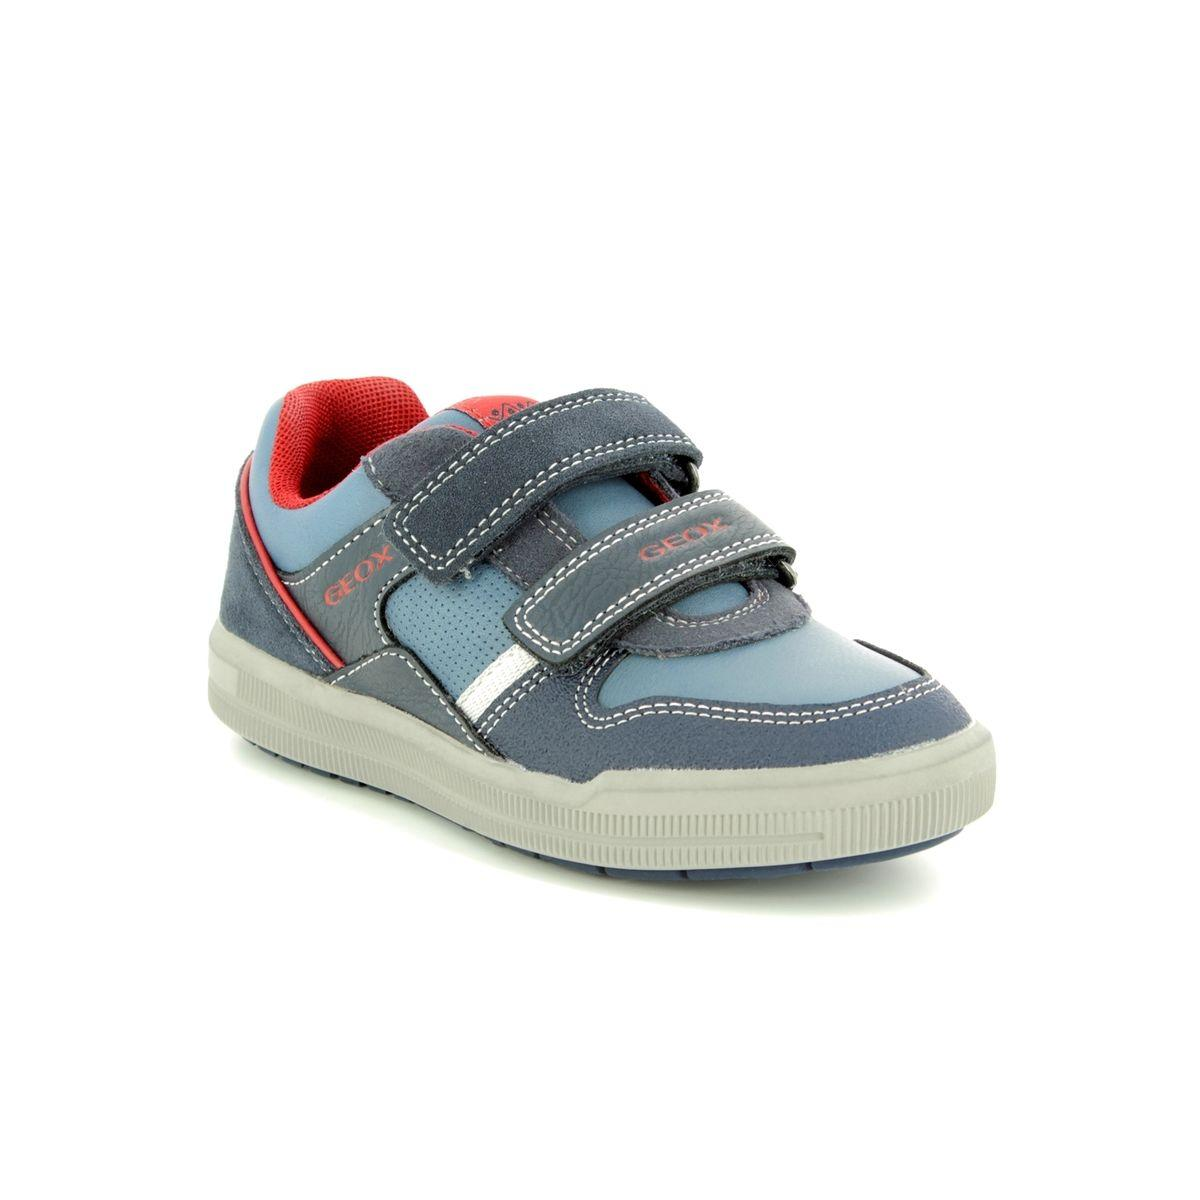 Fugaz Exactamente A gran escala  Geox Boys J Arzach B C Navy / Red Shoe J844AC - £47.99 - A great selection  of from Stampede Shoes